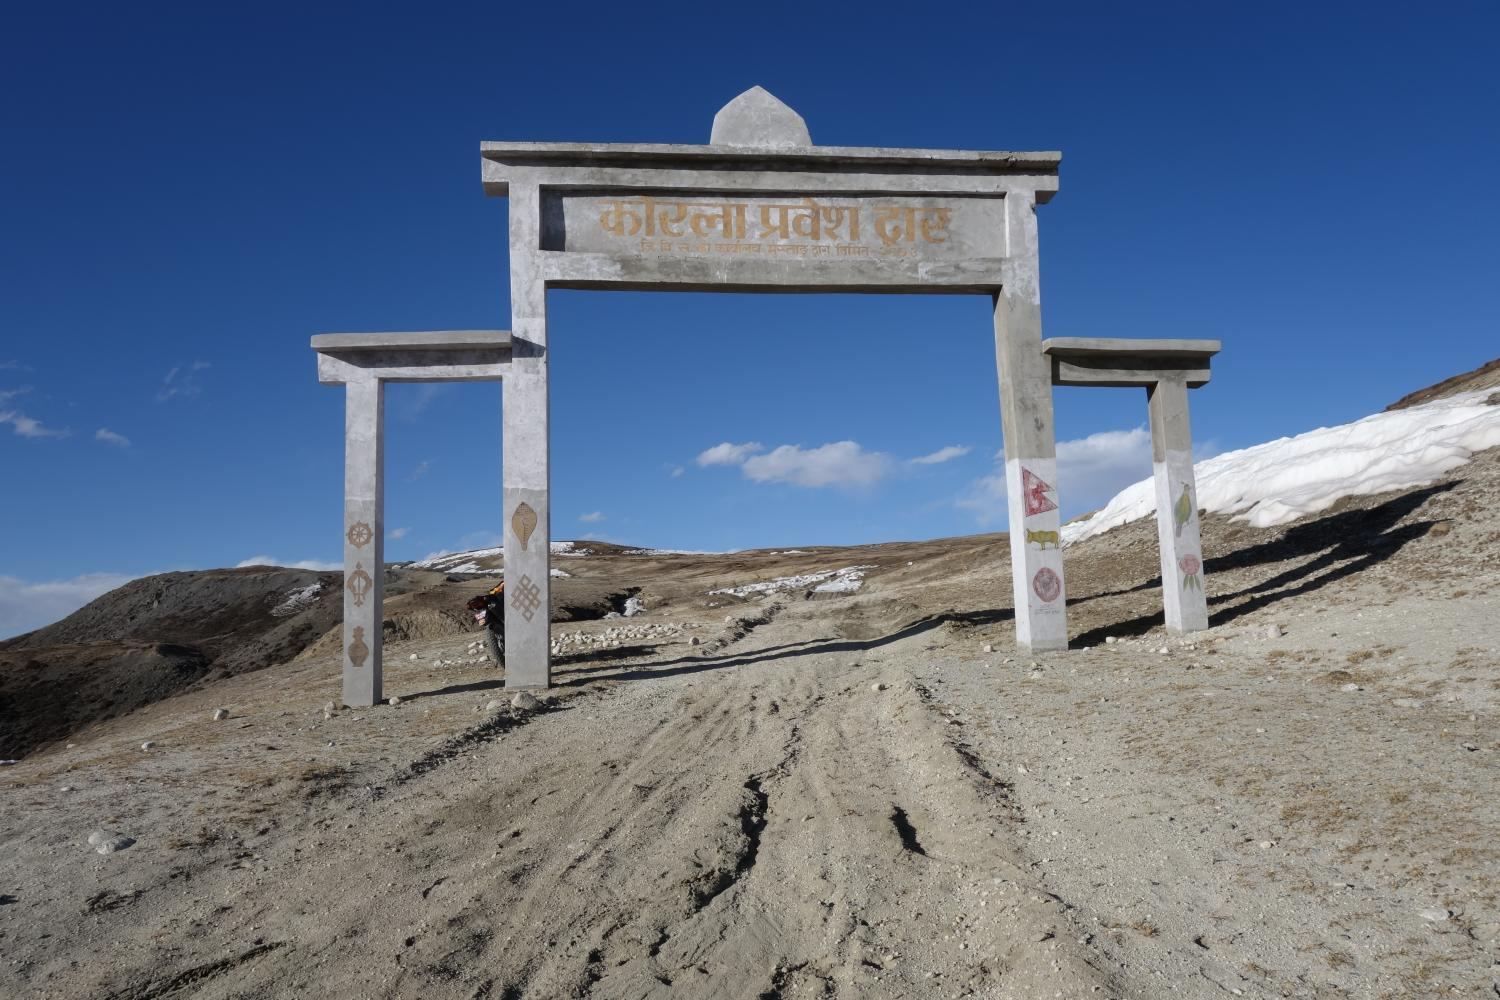 Built in the early 1960s, this Nepali gate marks the spot where sovereign territory gives way to the Nepal-China boundary zone at the Kora-la